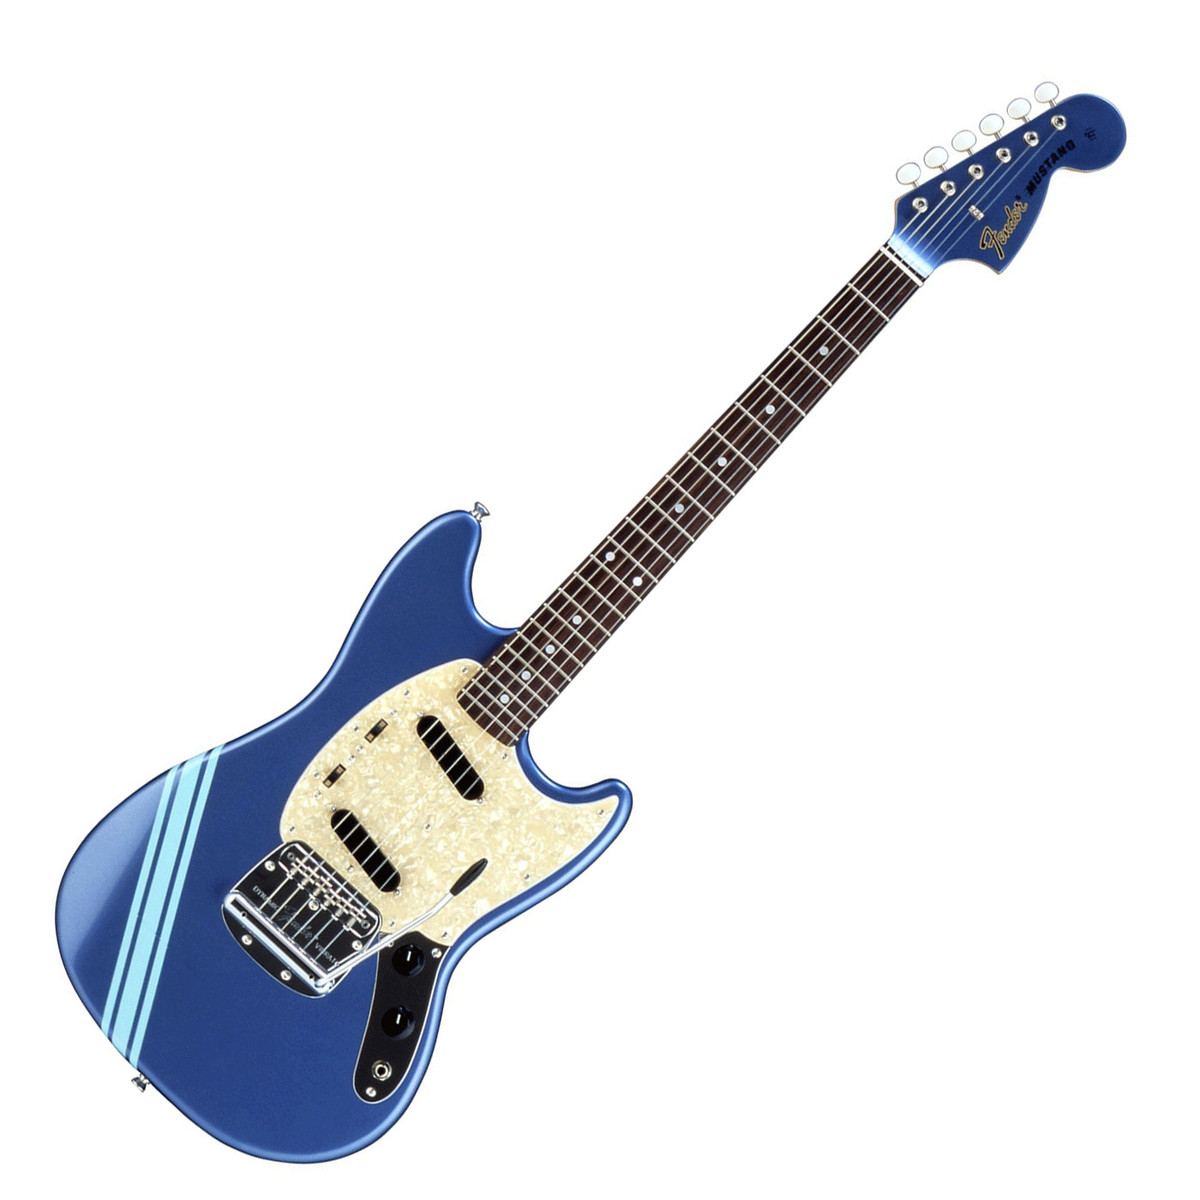 fender fsr competition mustang electric guitar lake placid blue at gear4music. Black Bedroom Furniture Sets. Home Design Ideas